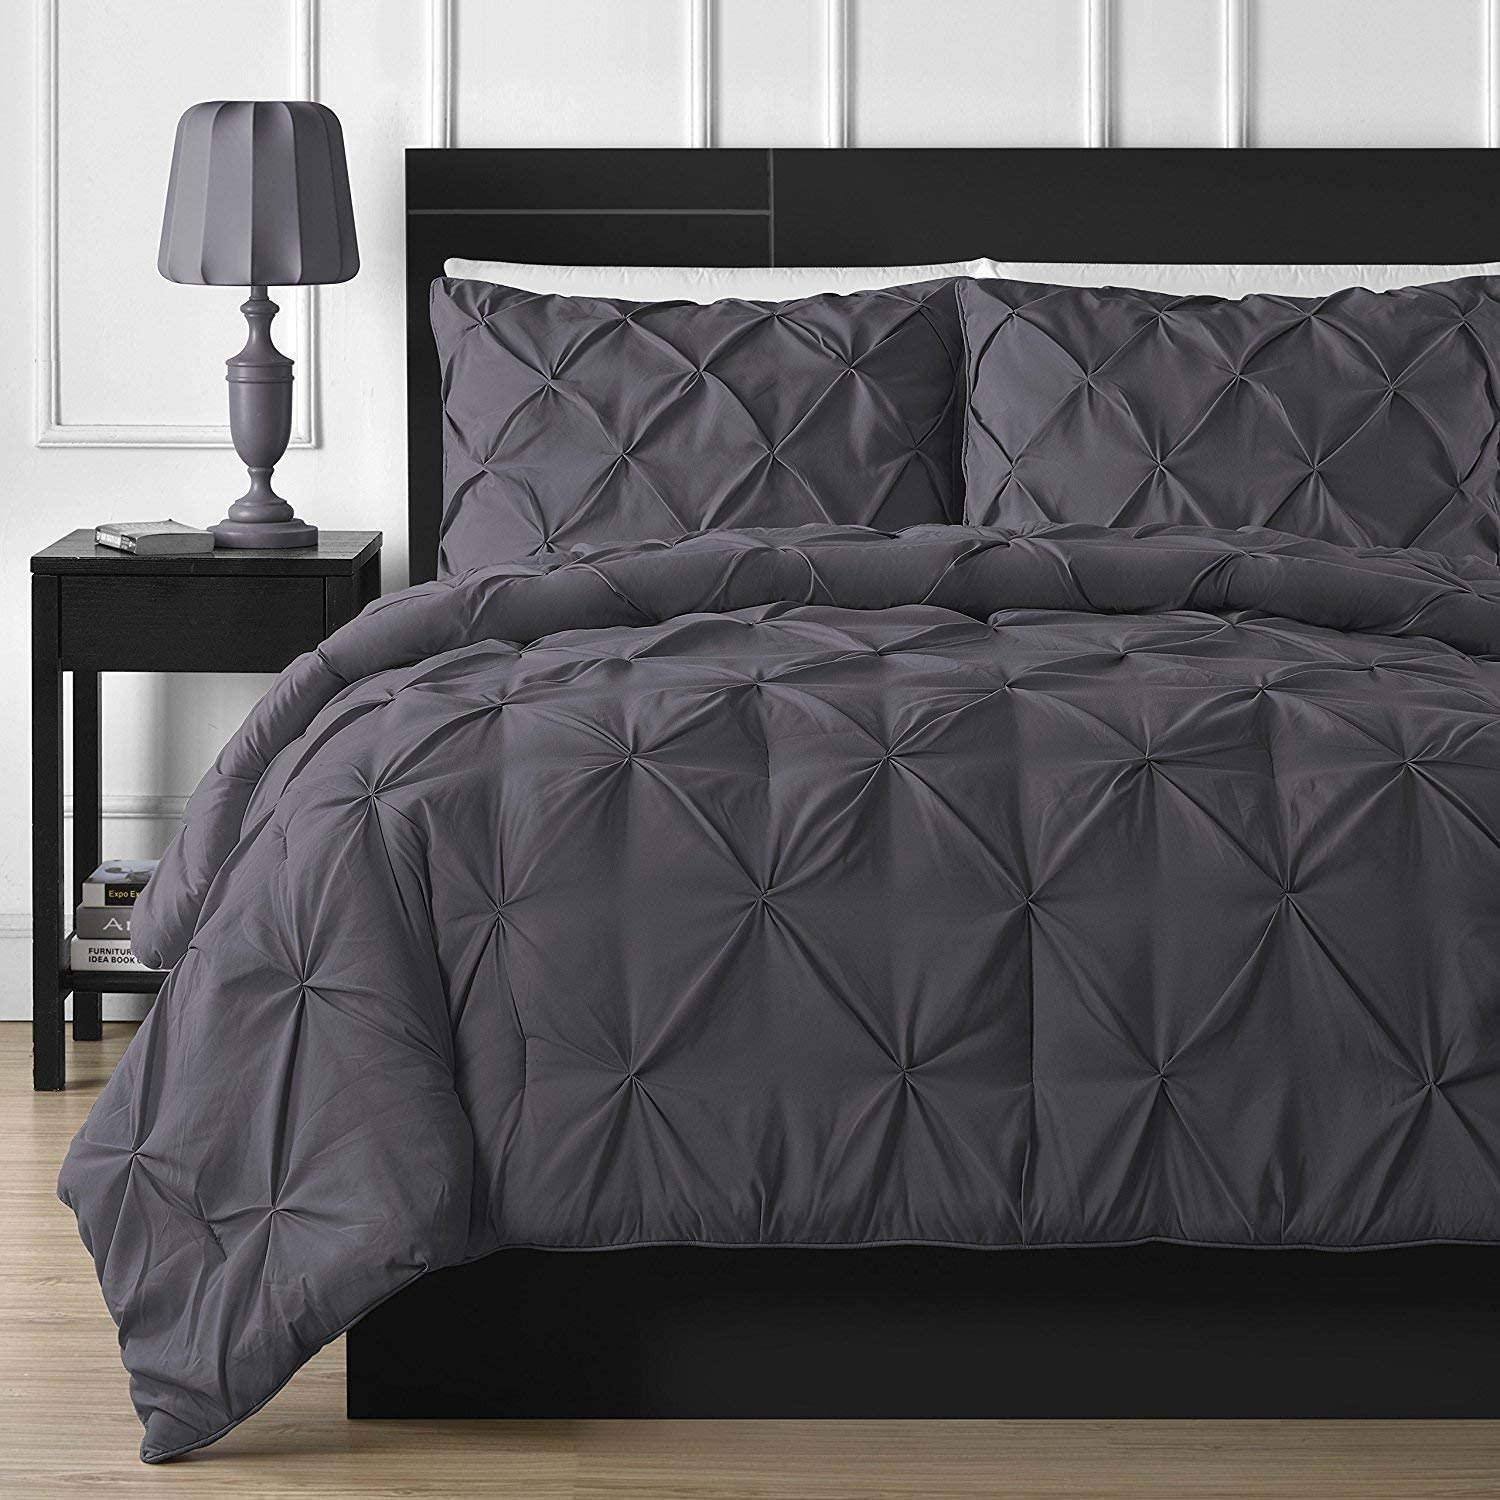 Pinch Pleated Duvet Cover Set Super King 108'' x 98'' Size 3pc Duvet Cover with Zipper Closure & Corner Ties, Pintuck Decorative (100% Natural Cotton) 920 Thread Count - Dark Grey Solid